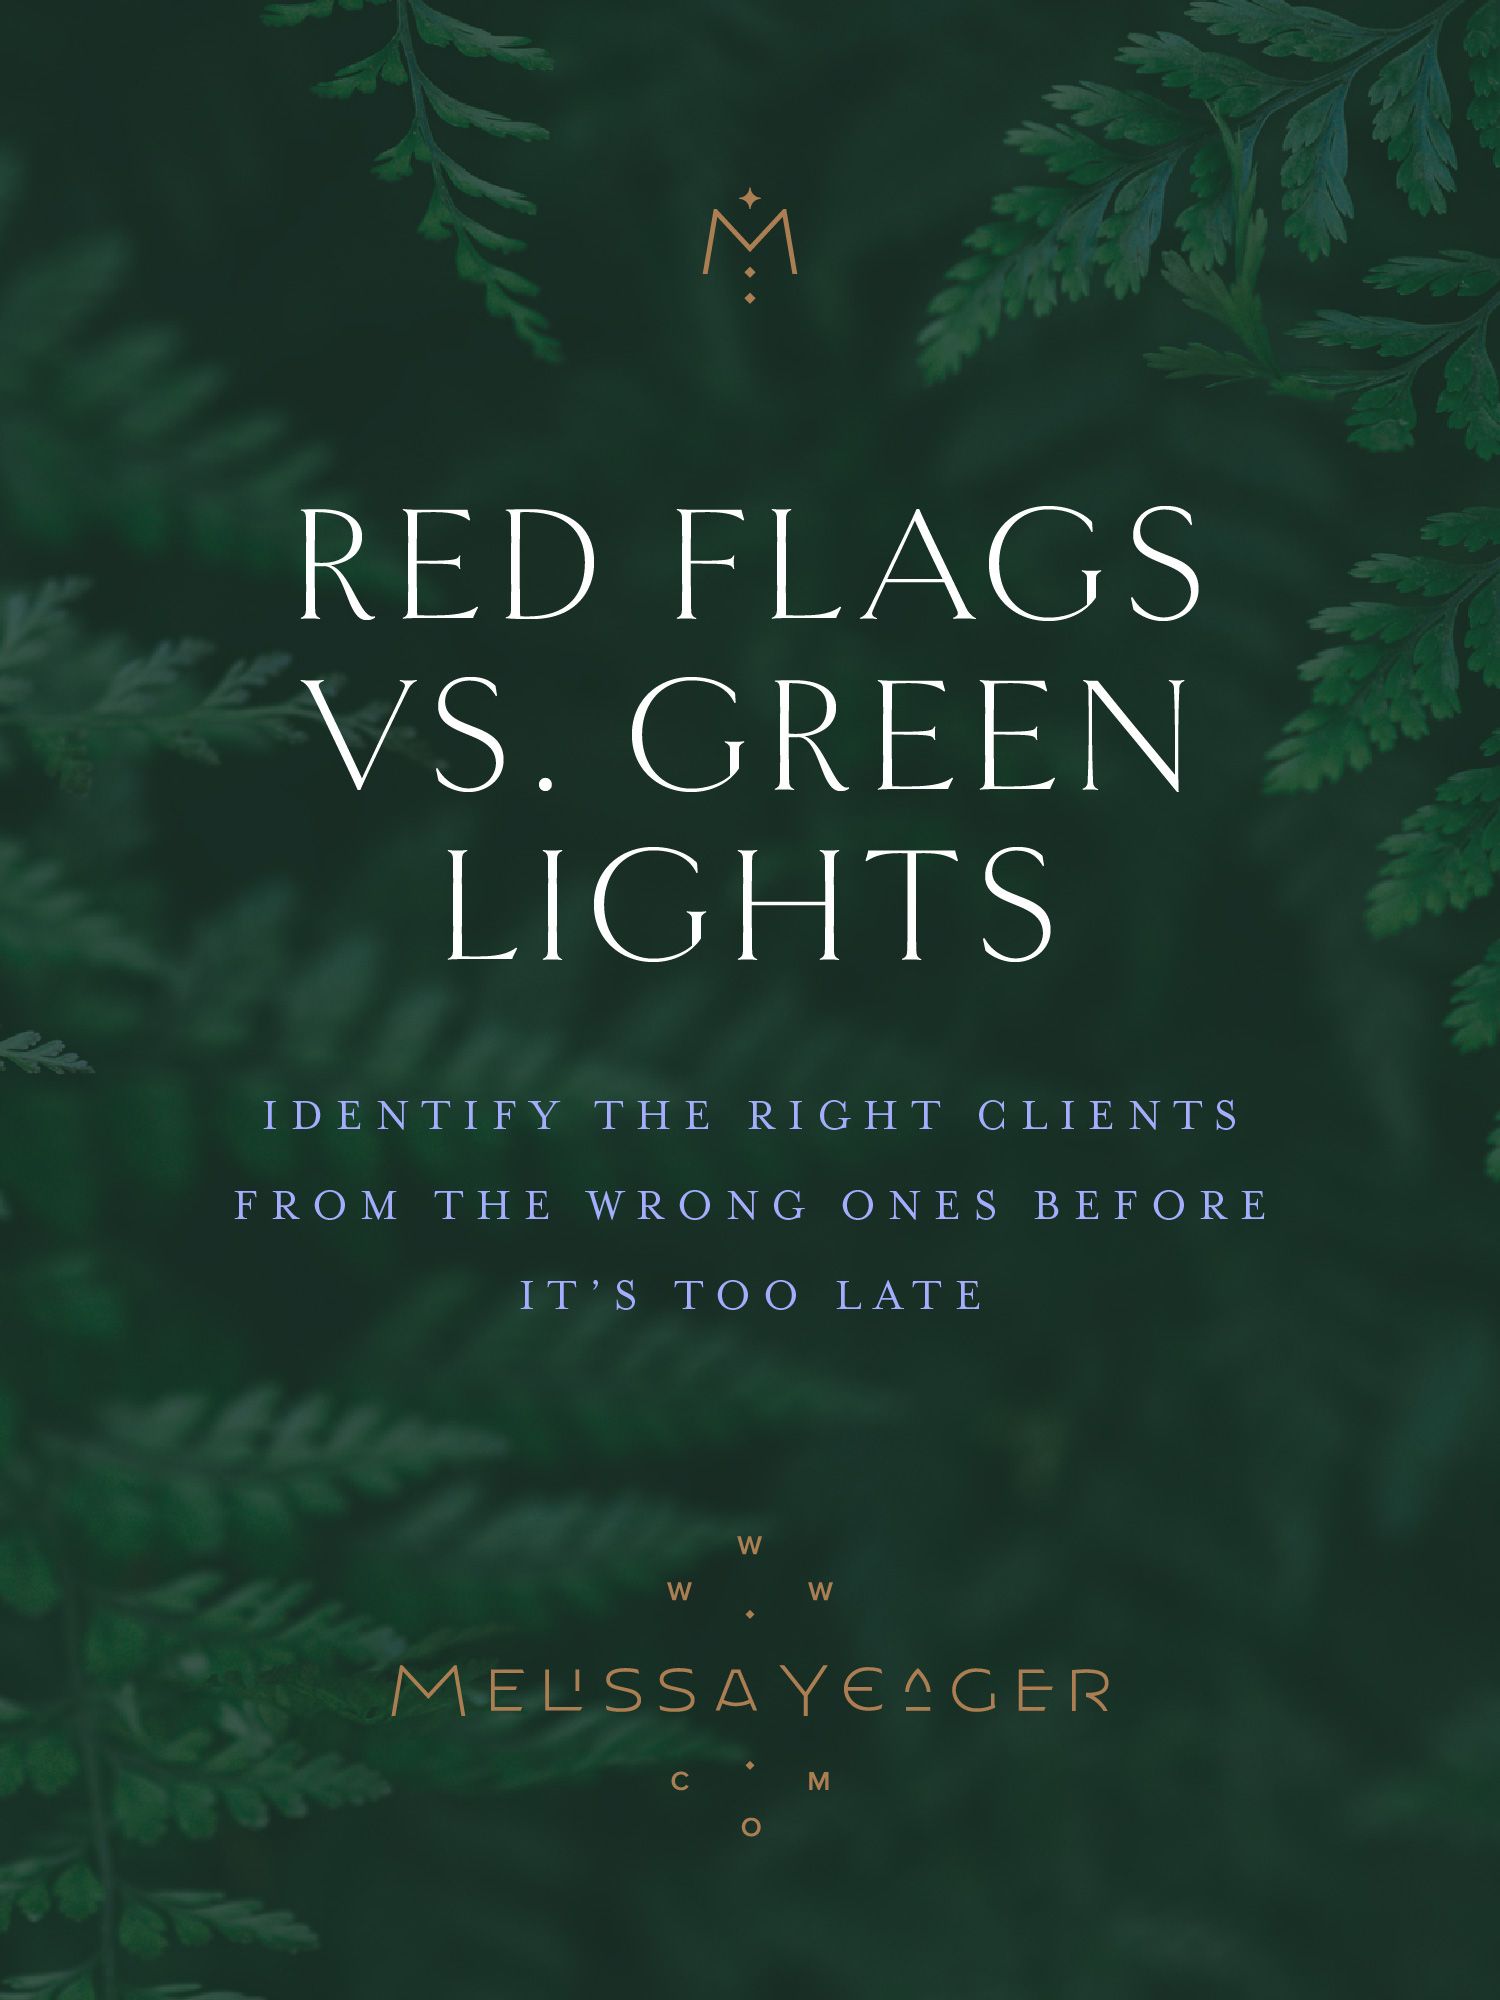 Red Flags vs. Green Lights - key tips for identifying the right clients from the wrong clients before it's too late